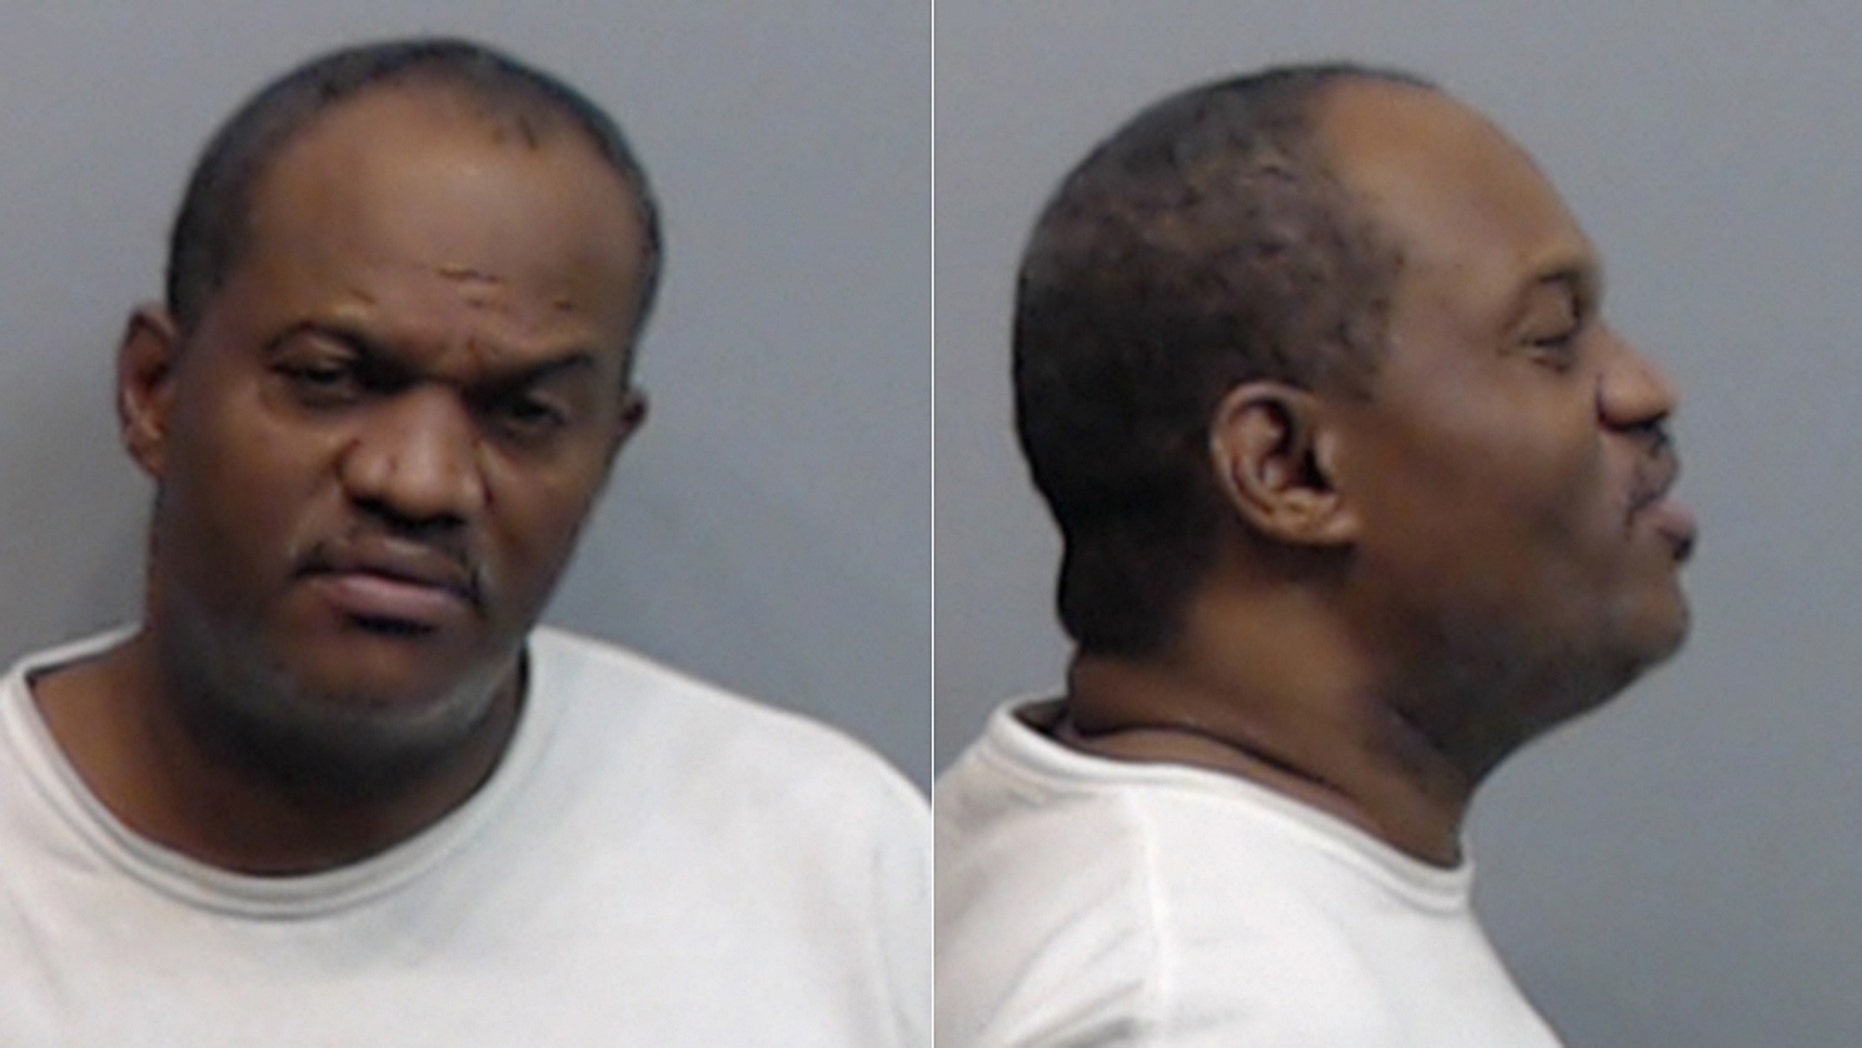 Antonio White, 54, was sentenced to life in prison without parole after he was convicted of rape.